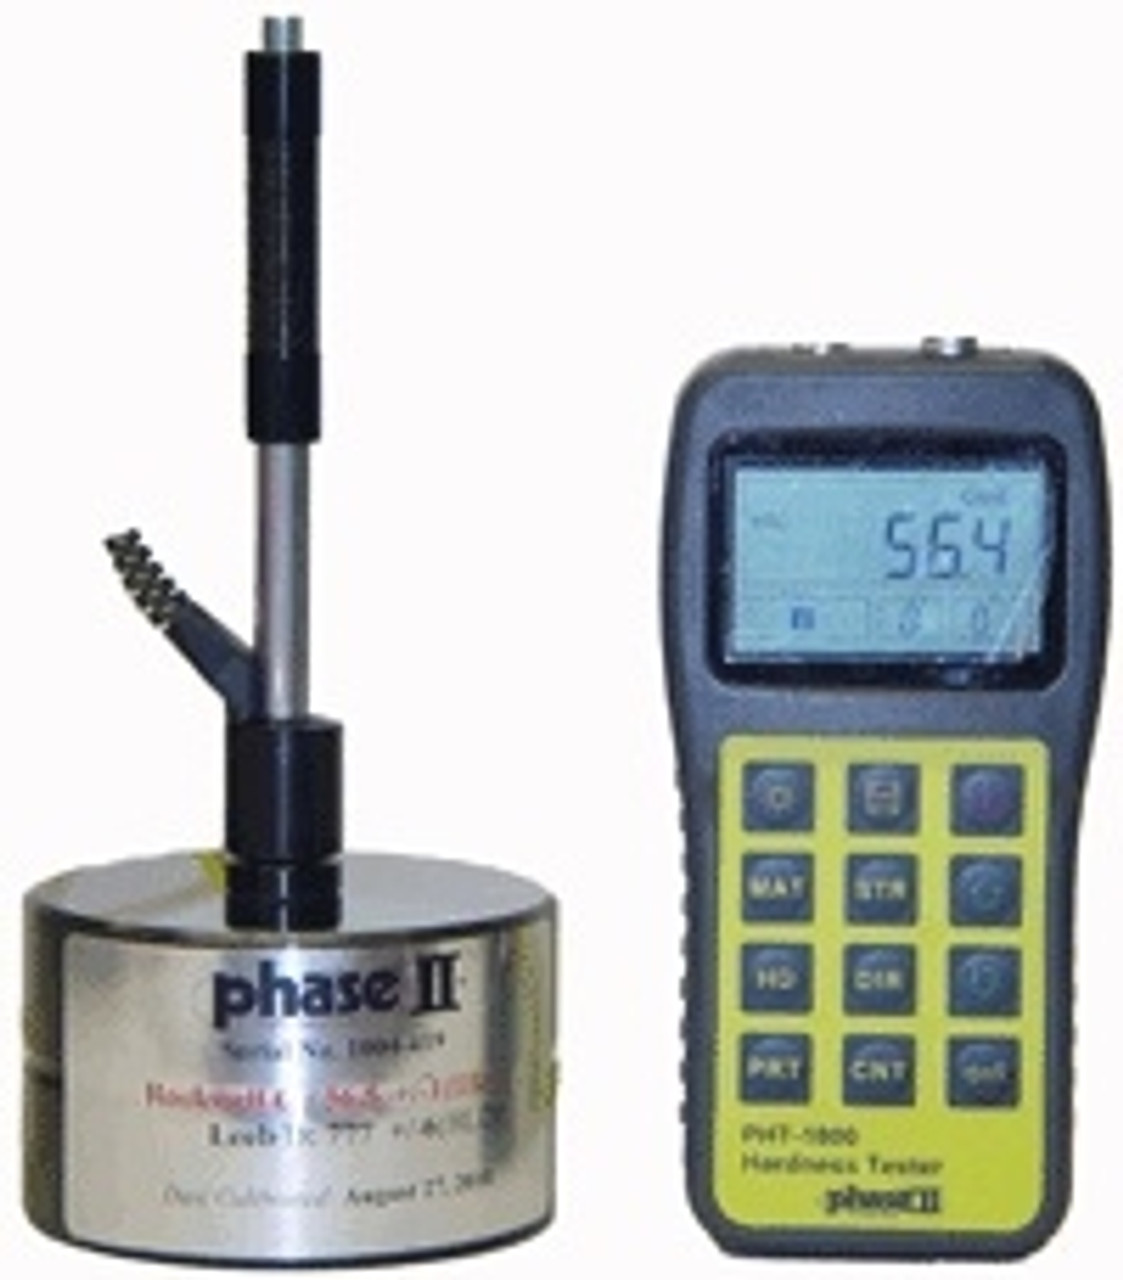 Phase II Portable Hardness Tester PHT-1800